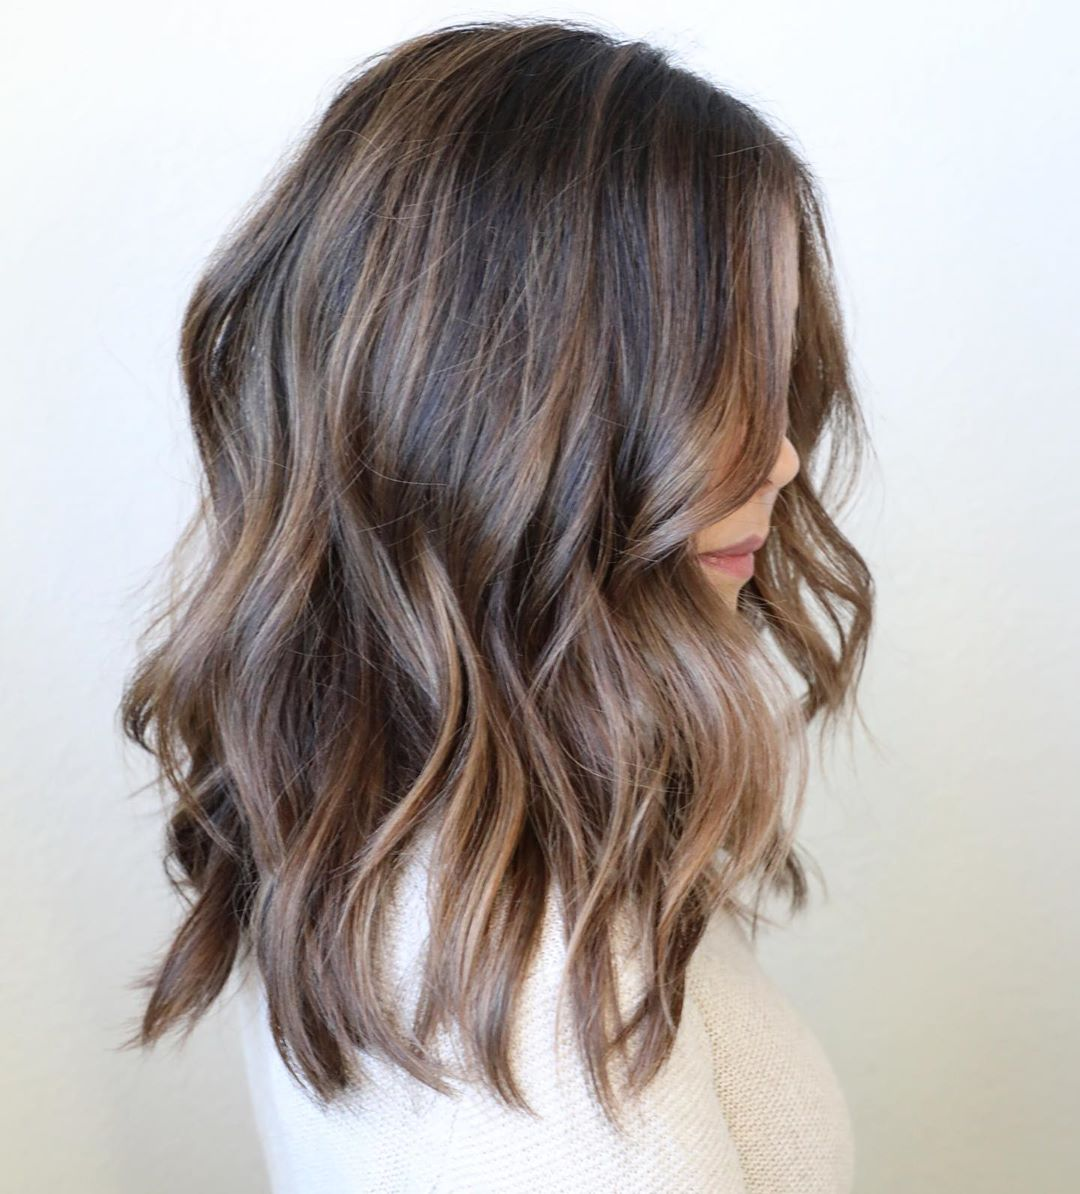 50 Trendy Brown Hair Colors and Brunette Hairstyle